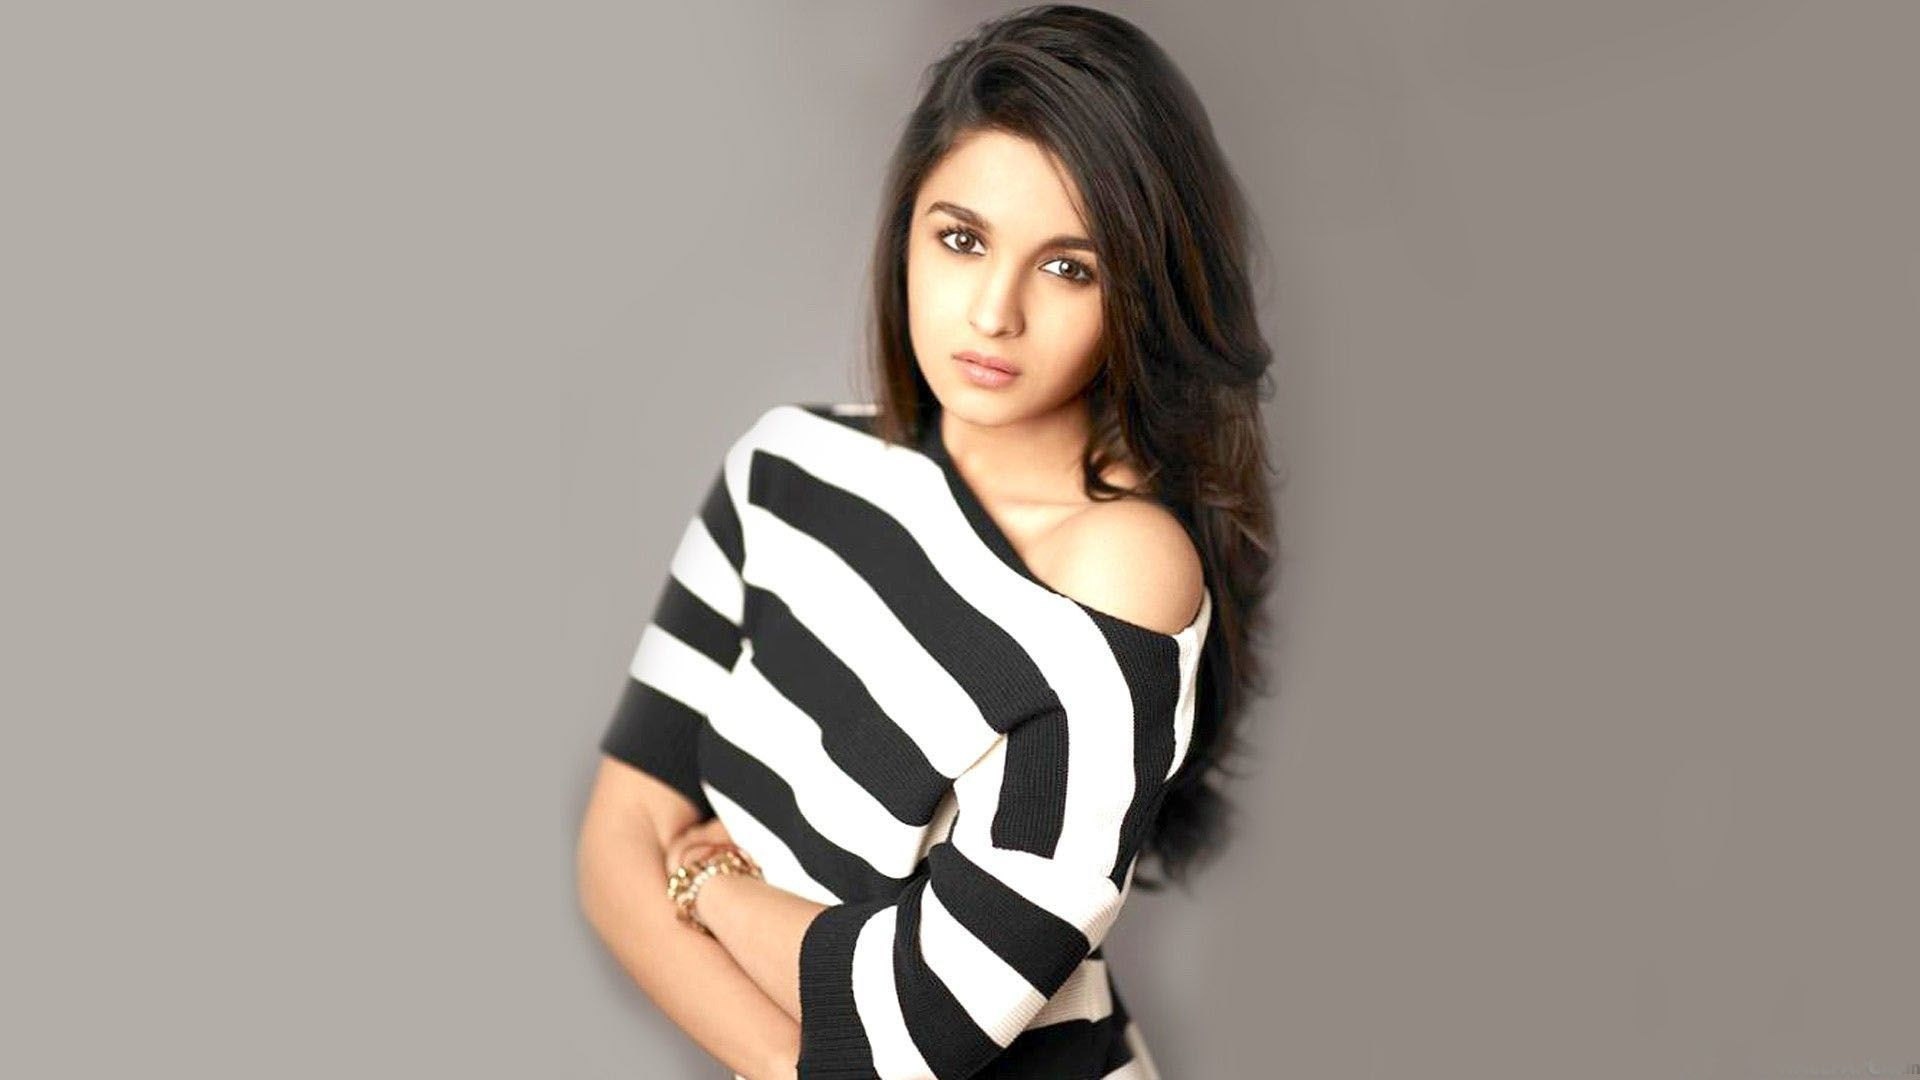 Alia bhatt hot and spicy images wallpapers - Sexy Alia Bhatt Hot Wallpaper For Whatsapp